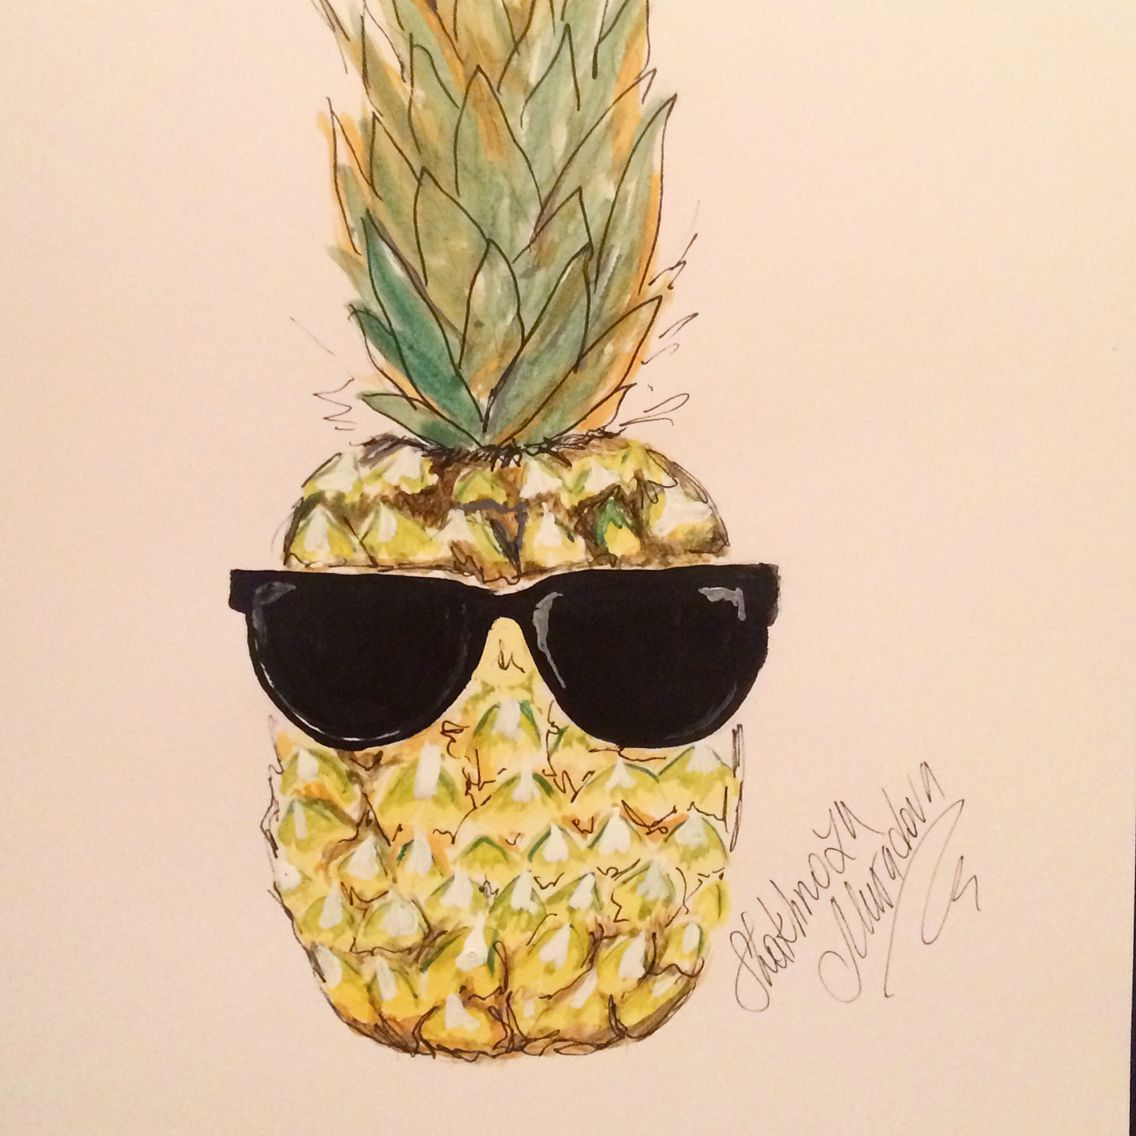 Pineapple With Sunglasses Tumblr Cool Pineapple Illustration By Shakhnoza Muradova